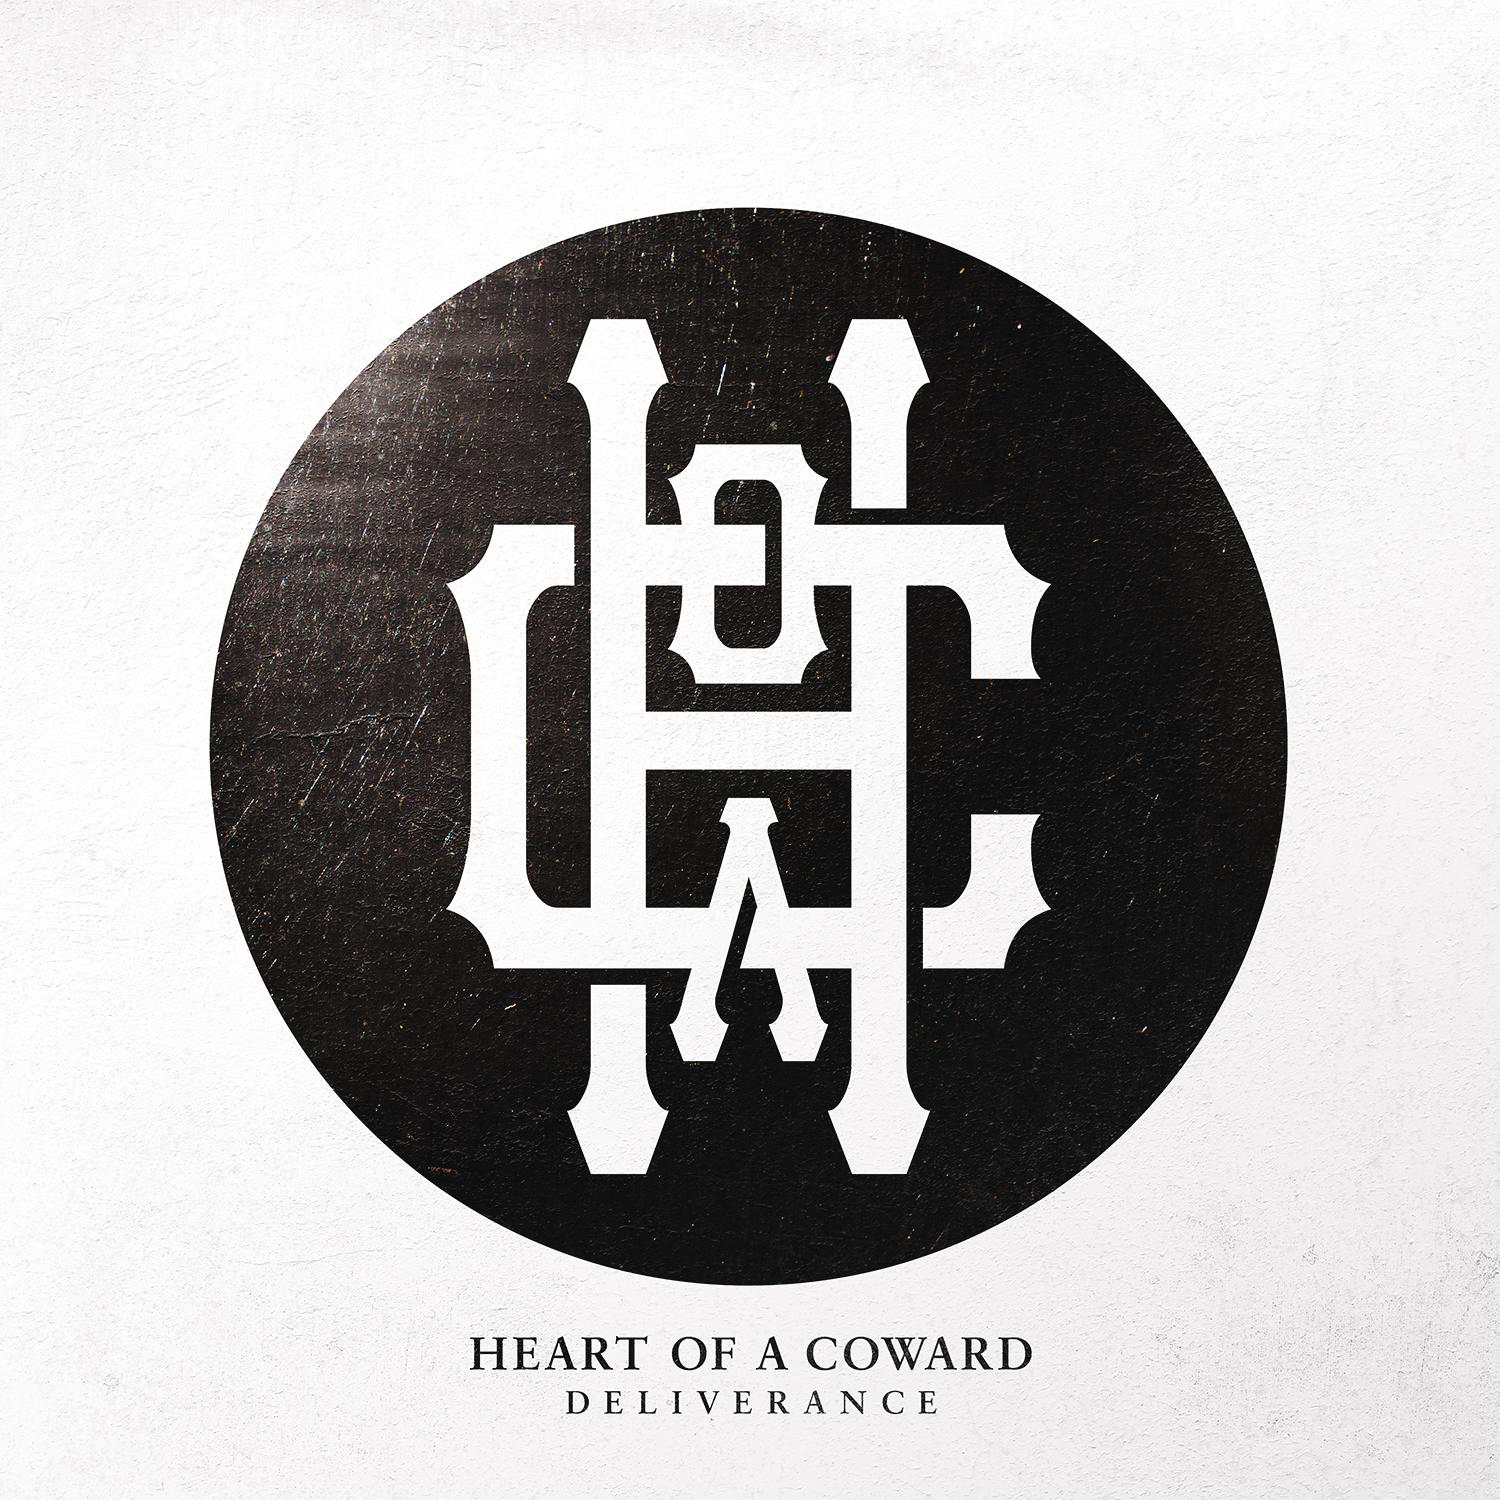 Heart of a coward discography at discogs.